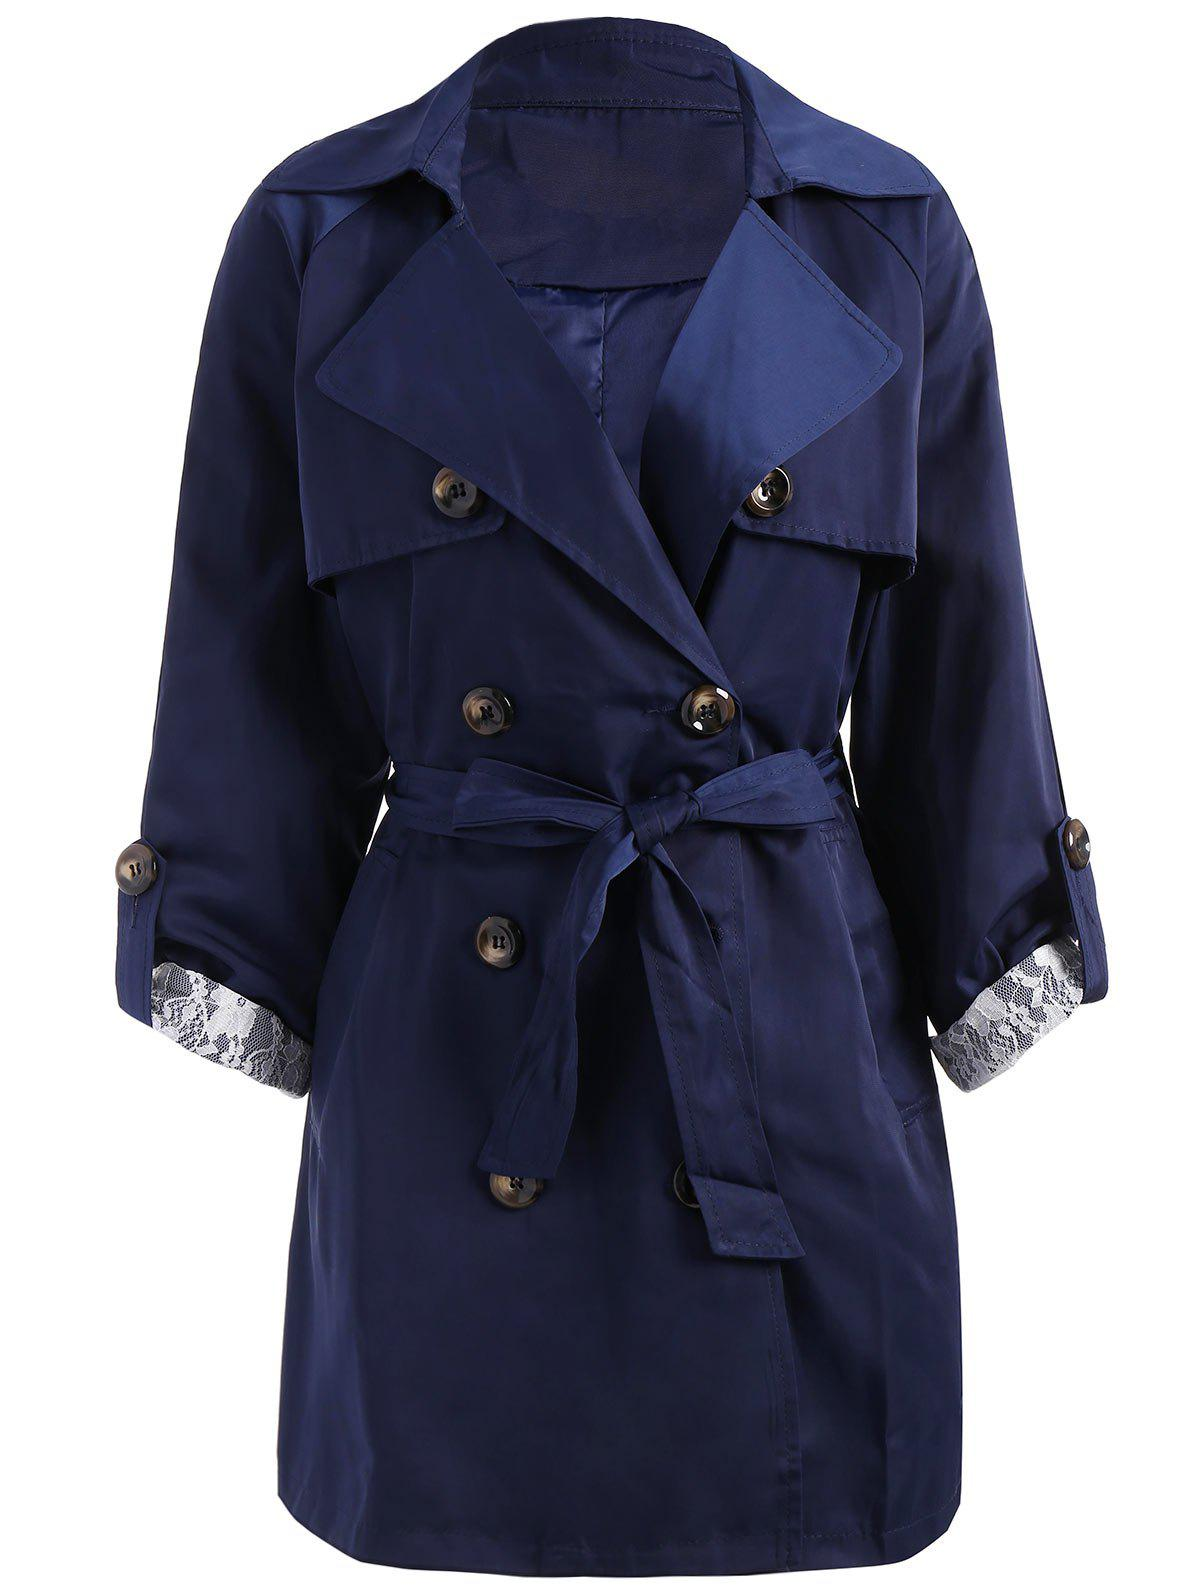 Double Breasted Lapel Plus Size Trench CoatWOMEN<br><br>Size: 4XL; Color: DEEP BLUE; Clothes Type: Trench; Material: Polyester; Type: Wide-waisted; Shirt Length: Long; Sleeve Length: Full; Collar: Lapel; Pattern Type: Solid; Style: Fashion; Season: Fall,Winter; Weight: 0.6700kg; Package Contents: 1 x Coat  1 x Belt;